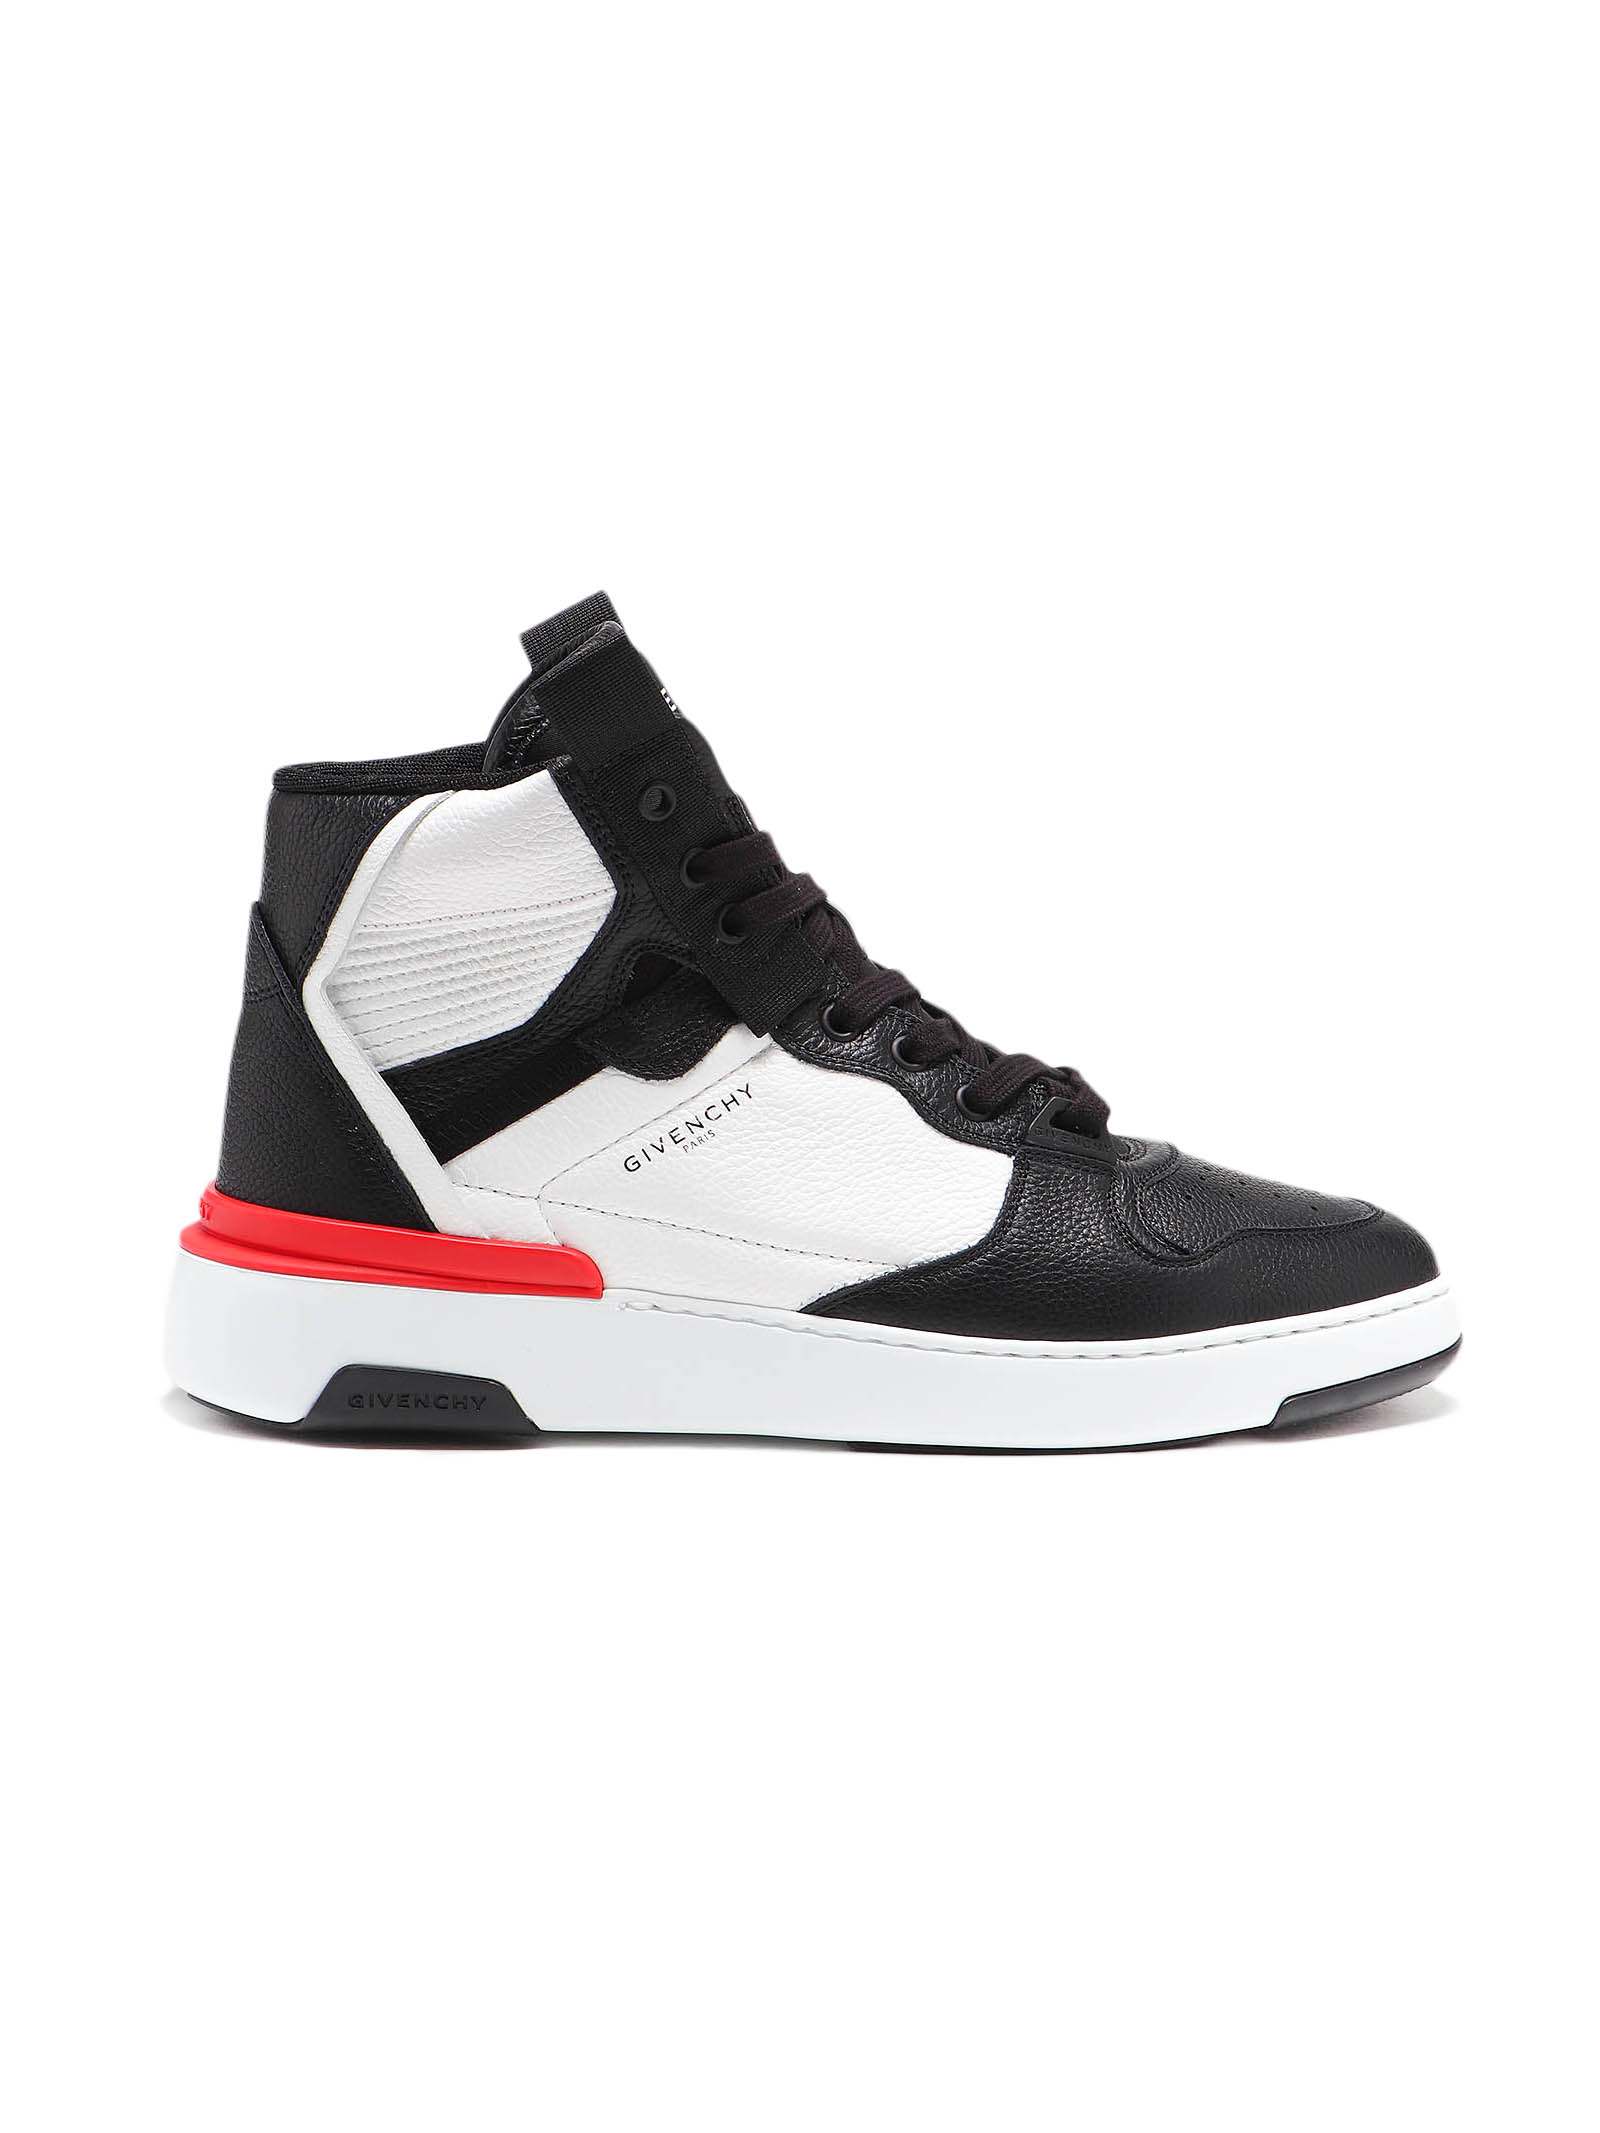 Immagine di Givenchy | Wing High Sneaker